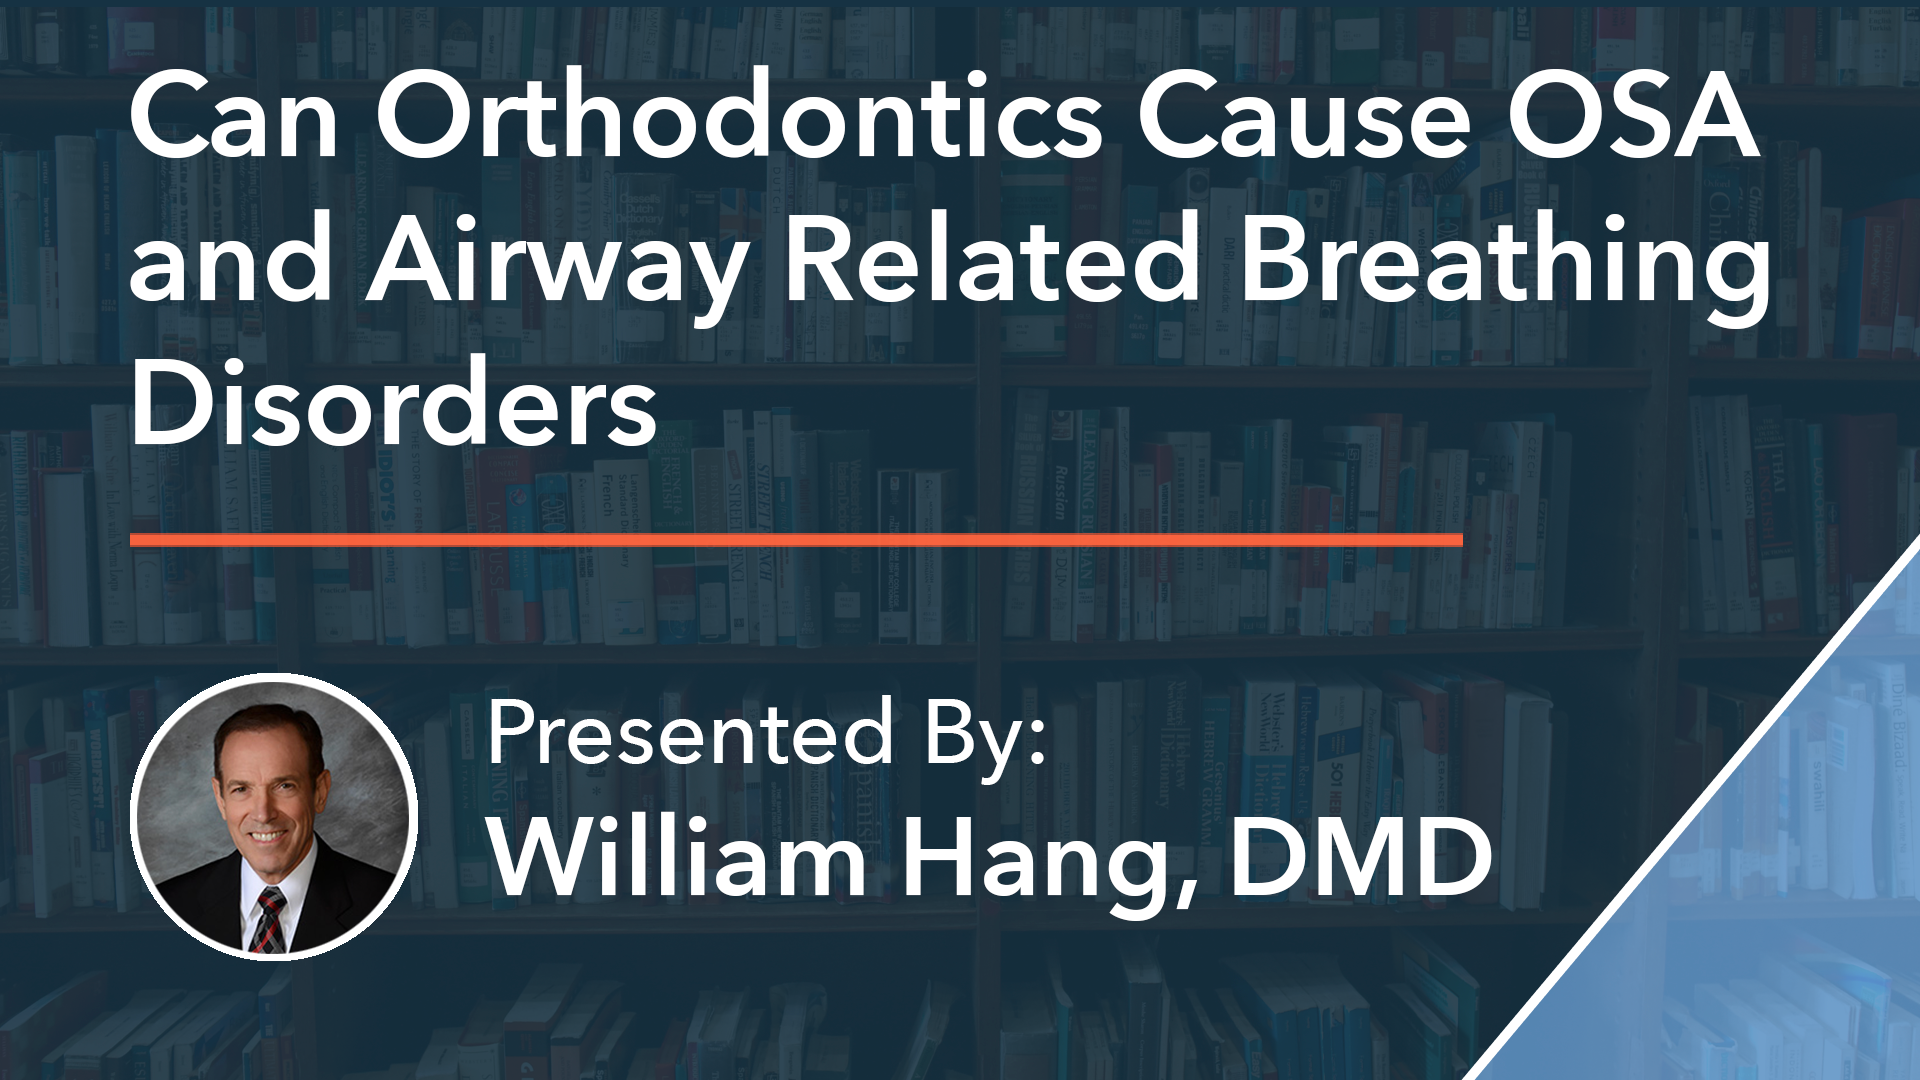 Can Orthodontics Cause OSA and Airway Related Breathing Disorders Dr William Hang